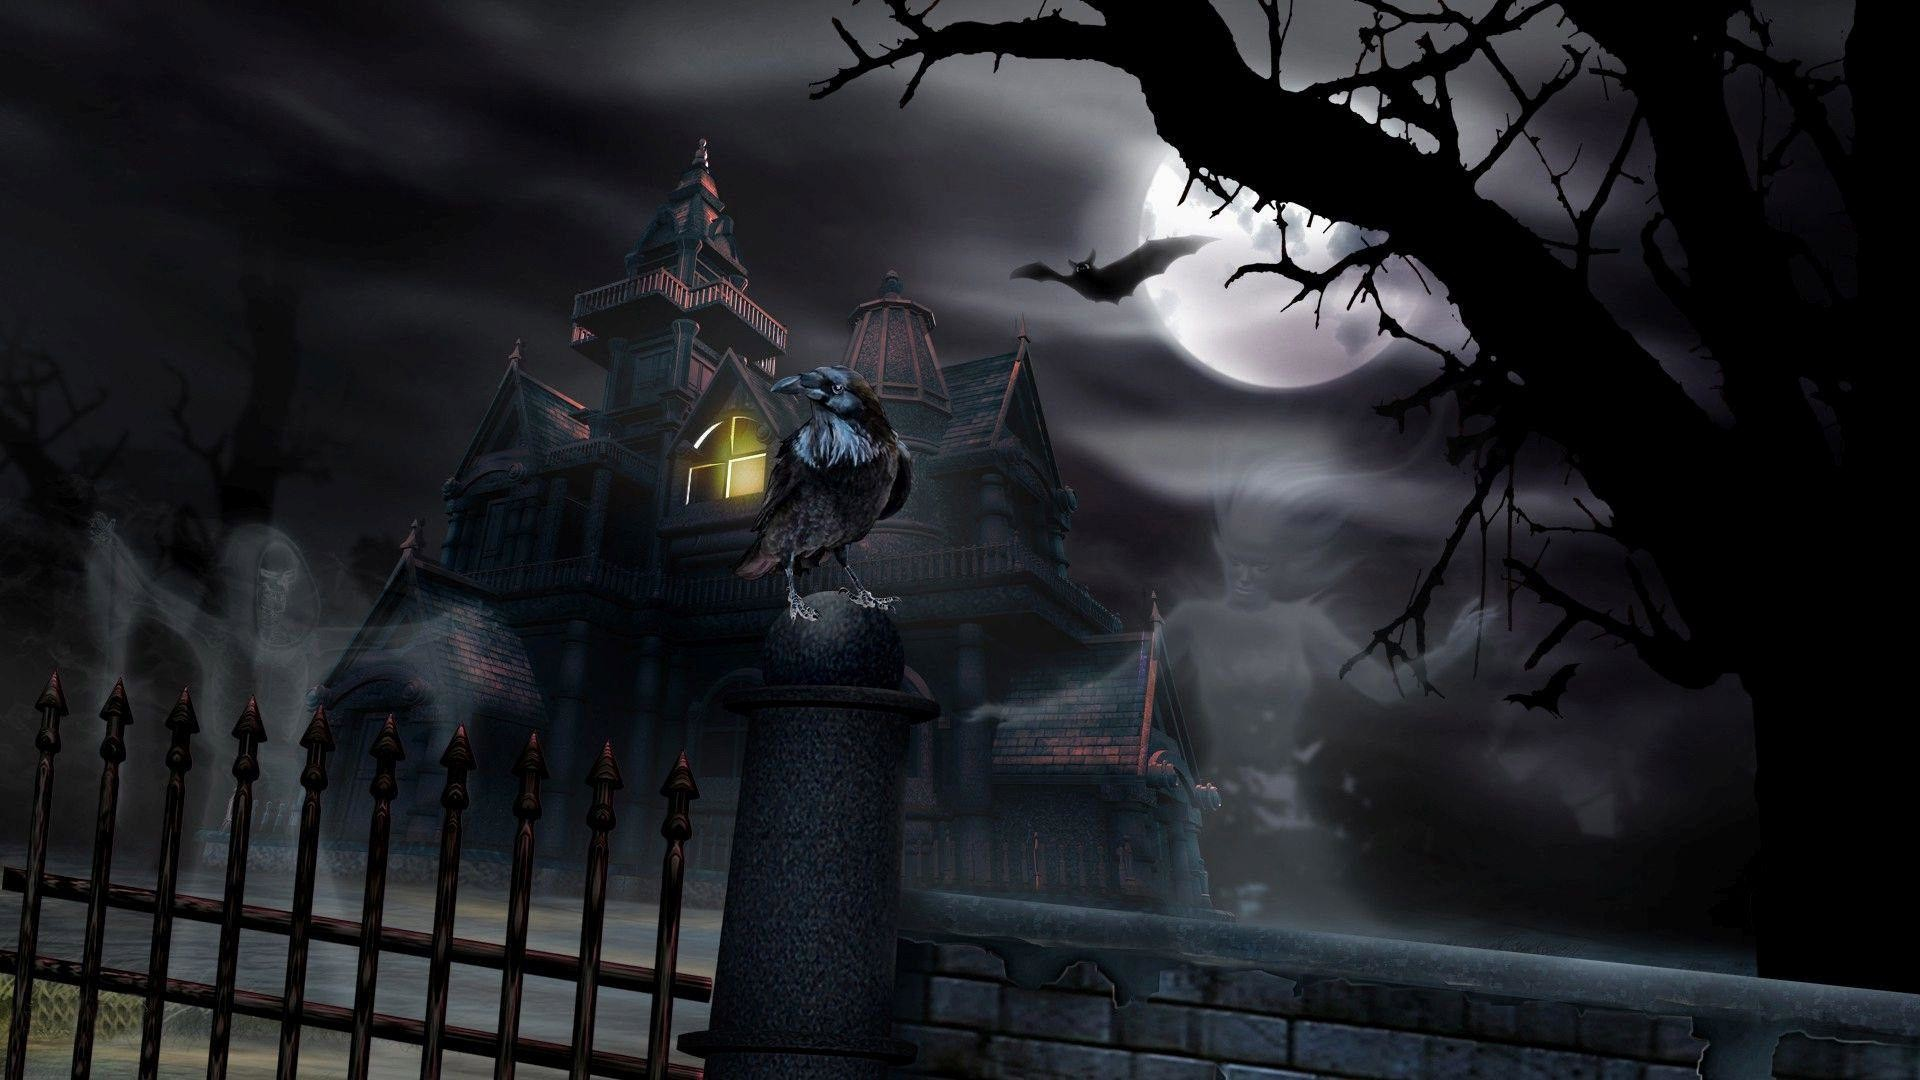 Haunted-House-Live-Download-Haunted-House-Live-wallpaper-